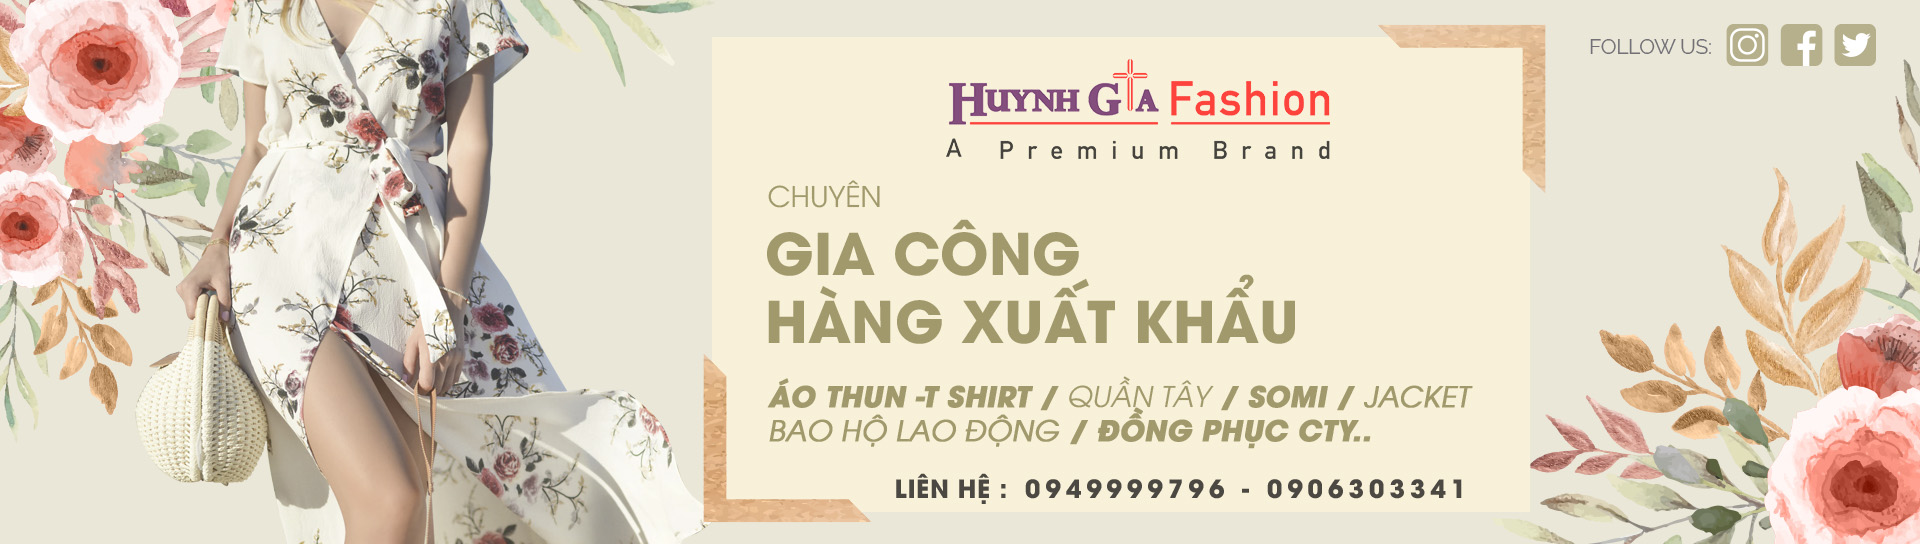 HUYNH GIA FASHION ONE MEMBER CO.,LTD